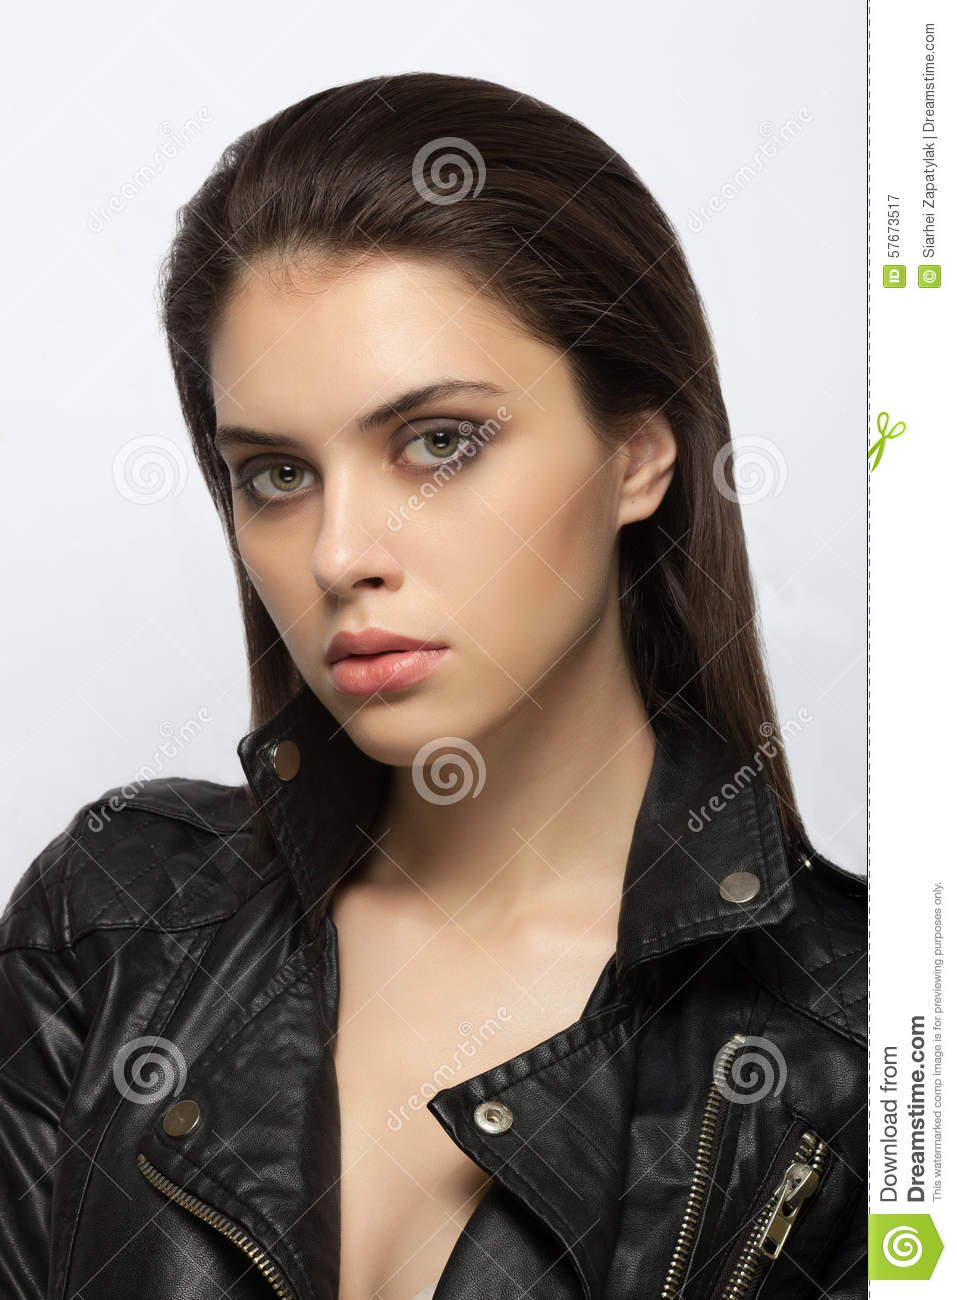 Emotive closeup portrait of a young attractive brunette woman posing for model tests in black leather jacket